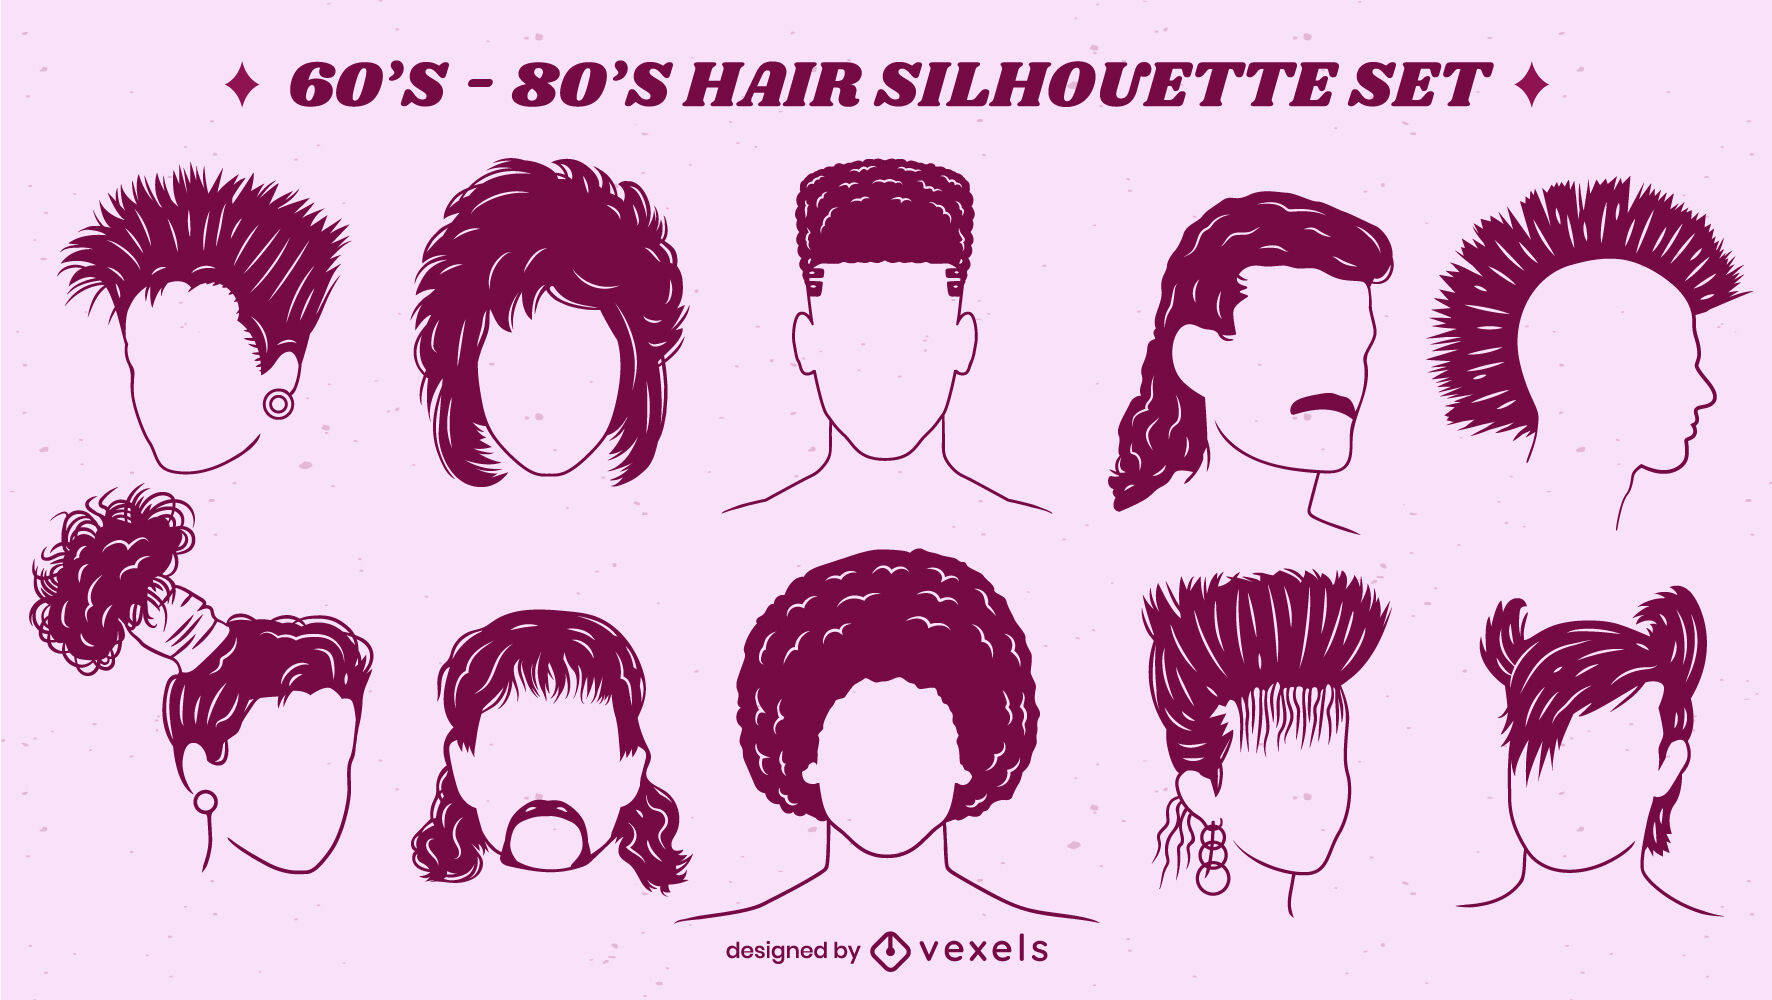 Retro 70s 80s set of hairstyles cut out